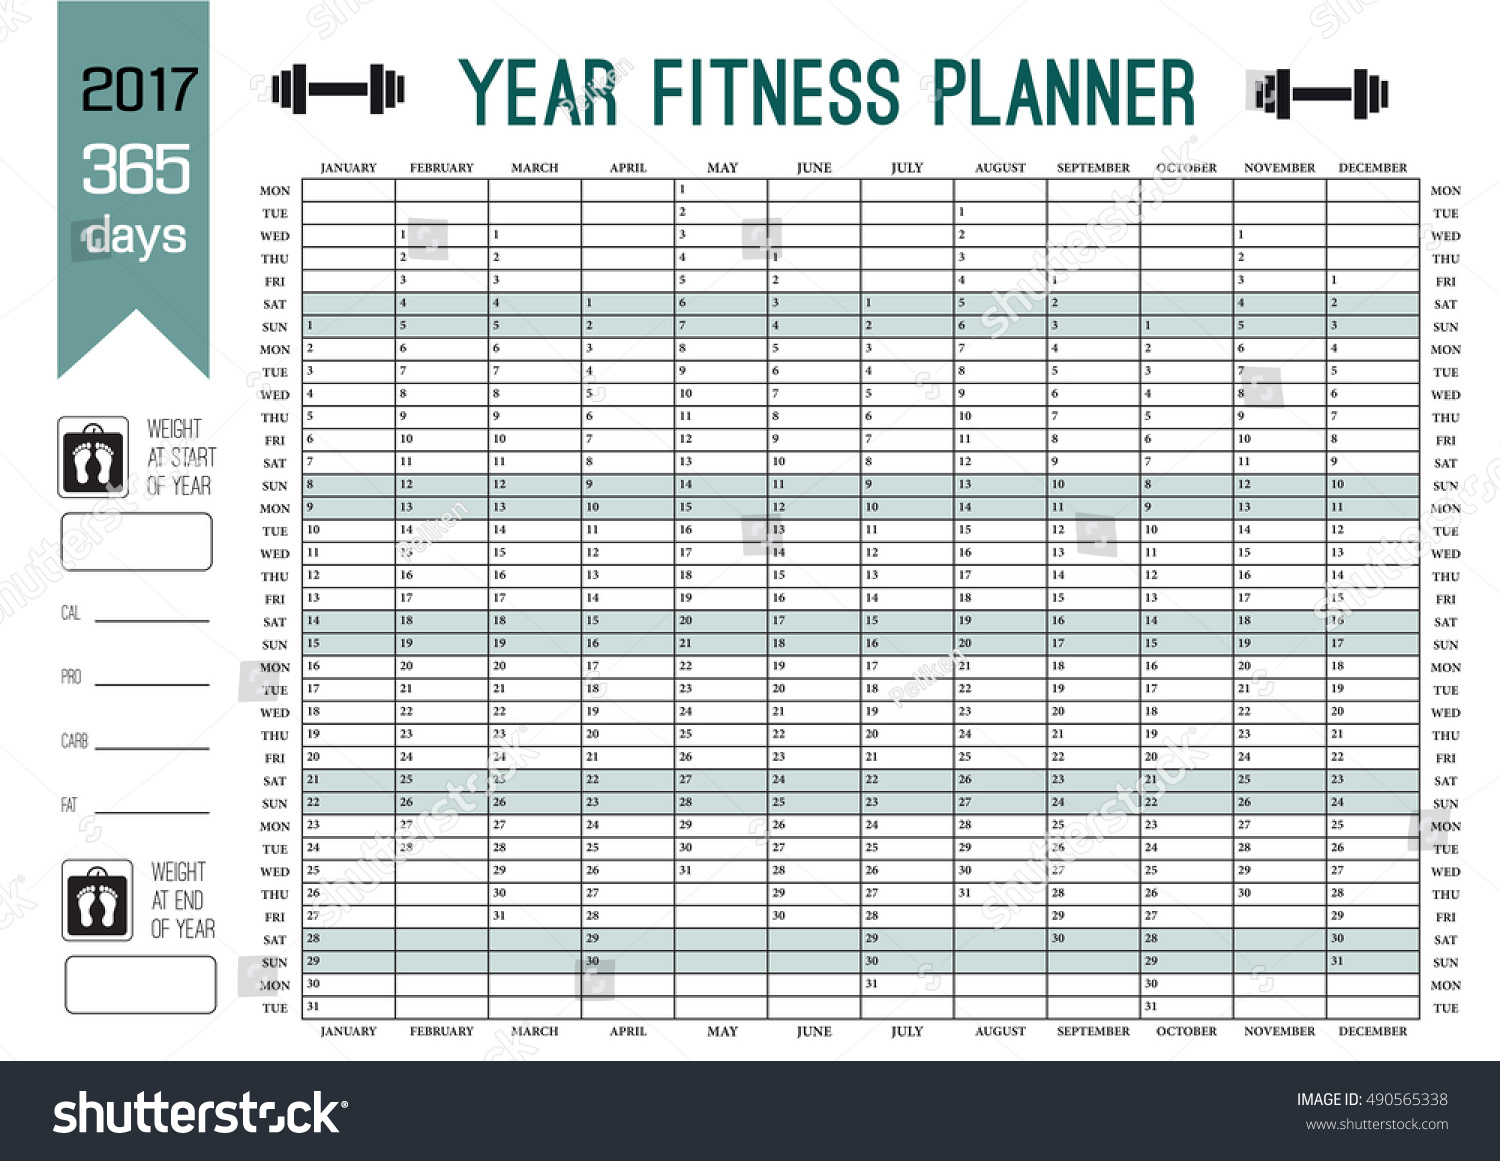 Fitness Plan Template | Fitness Plan Template Eliolera Com